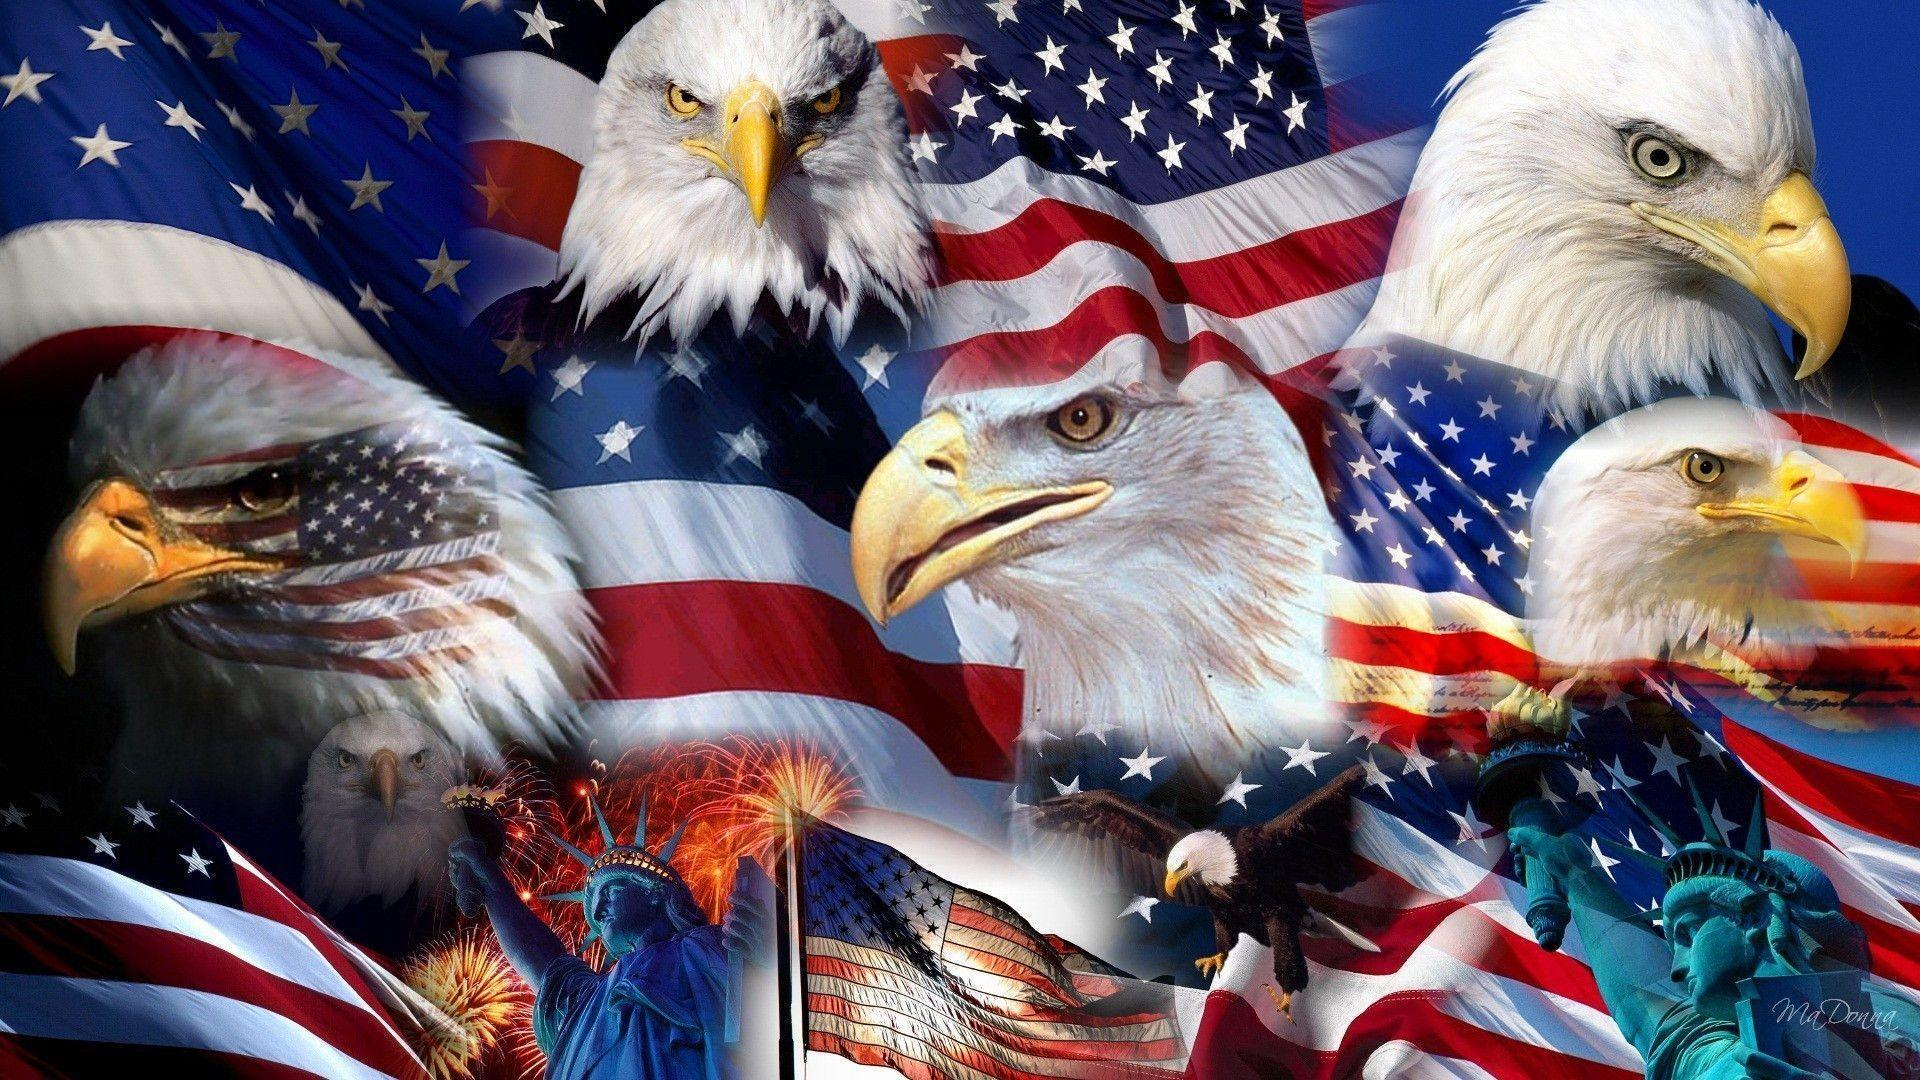 patriotic wallpapers wallpaper cave